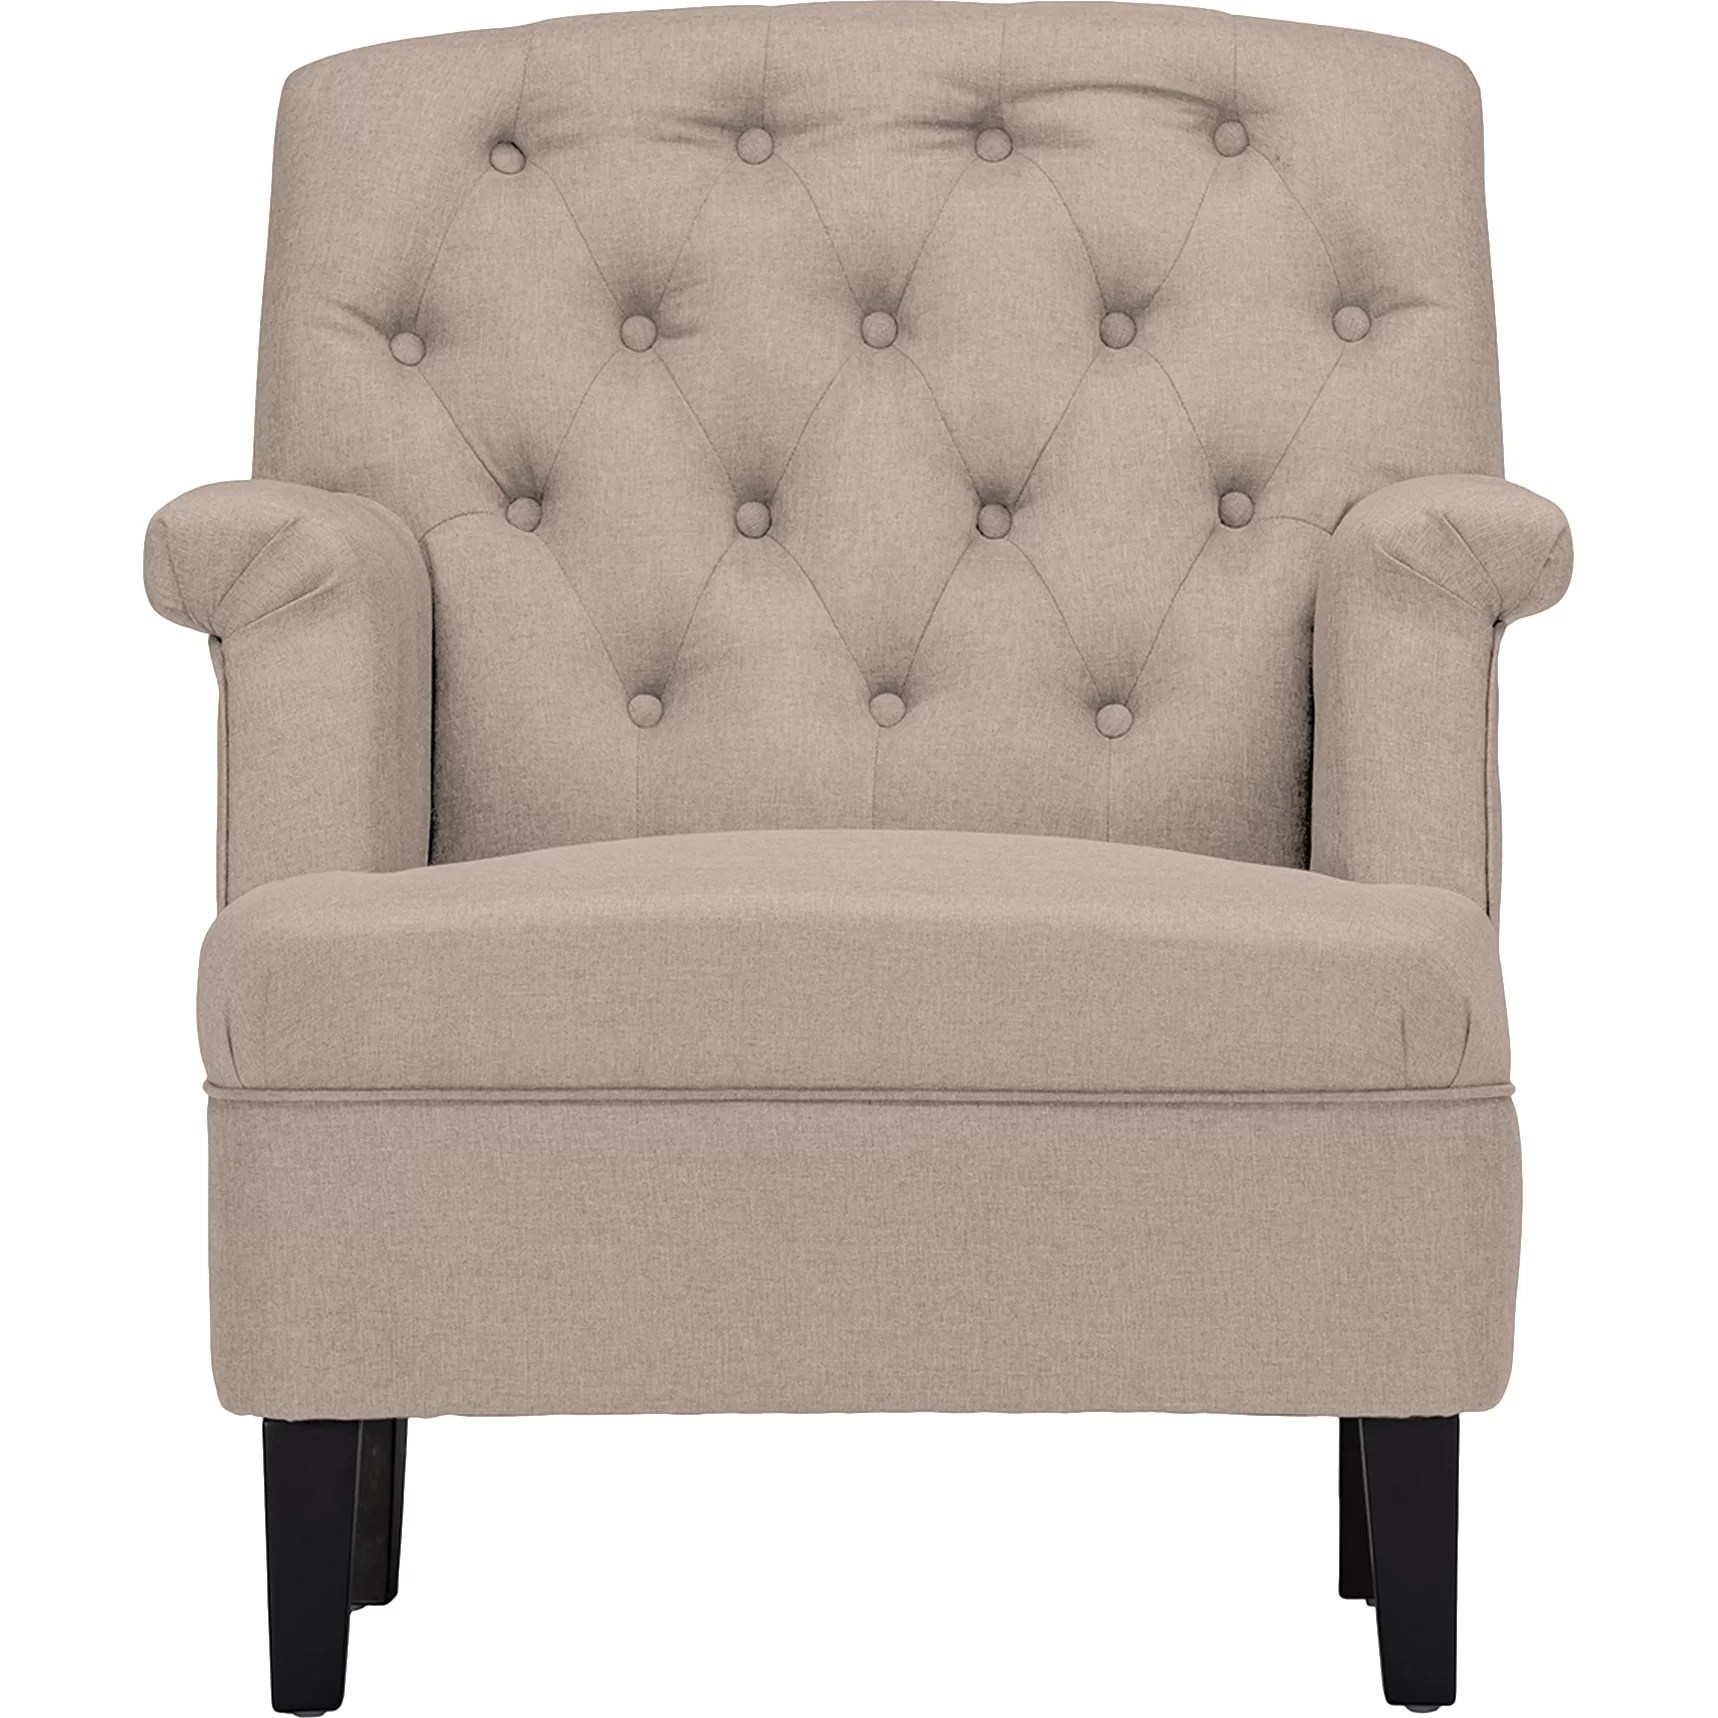 Upholstered Accent Chairs With Arms Latitude Run Sheryl Classic Retro Upholstered Arm Chair